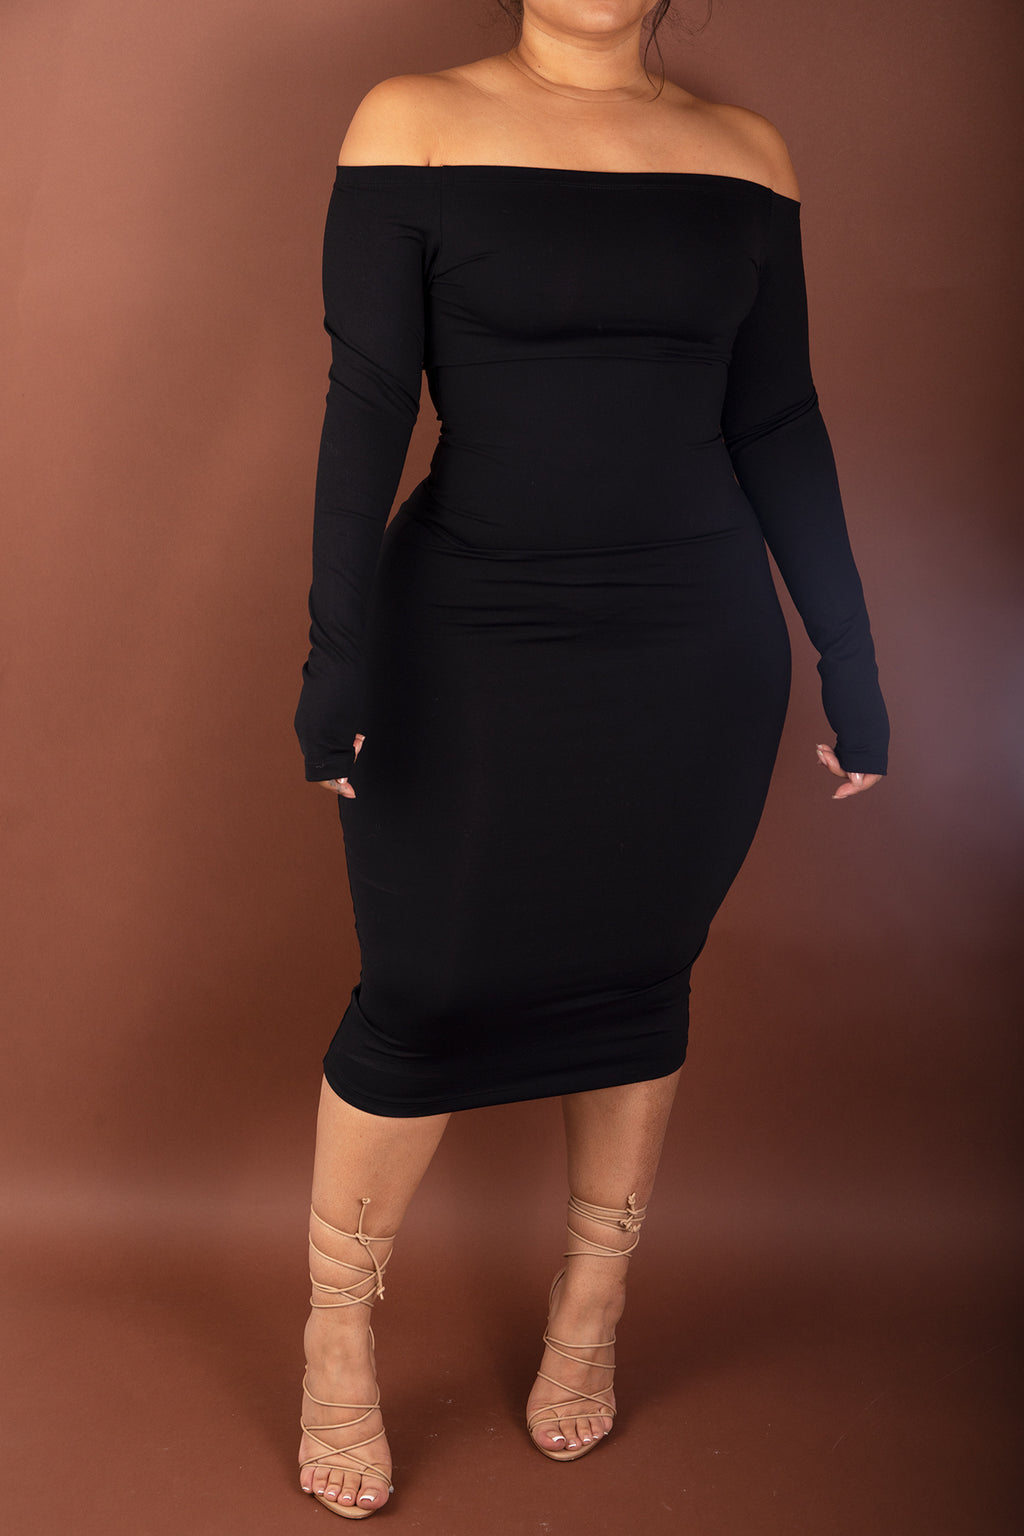 The Stretch Black Wifey Shaping *MIDI* 2.0